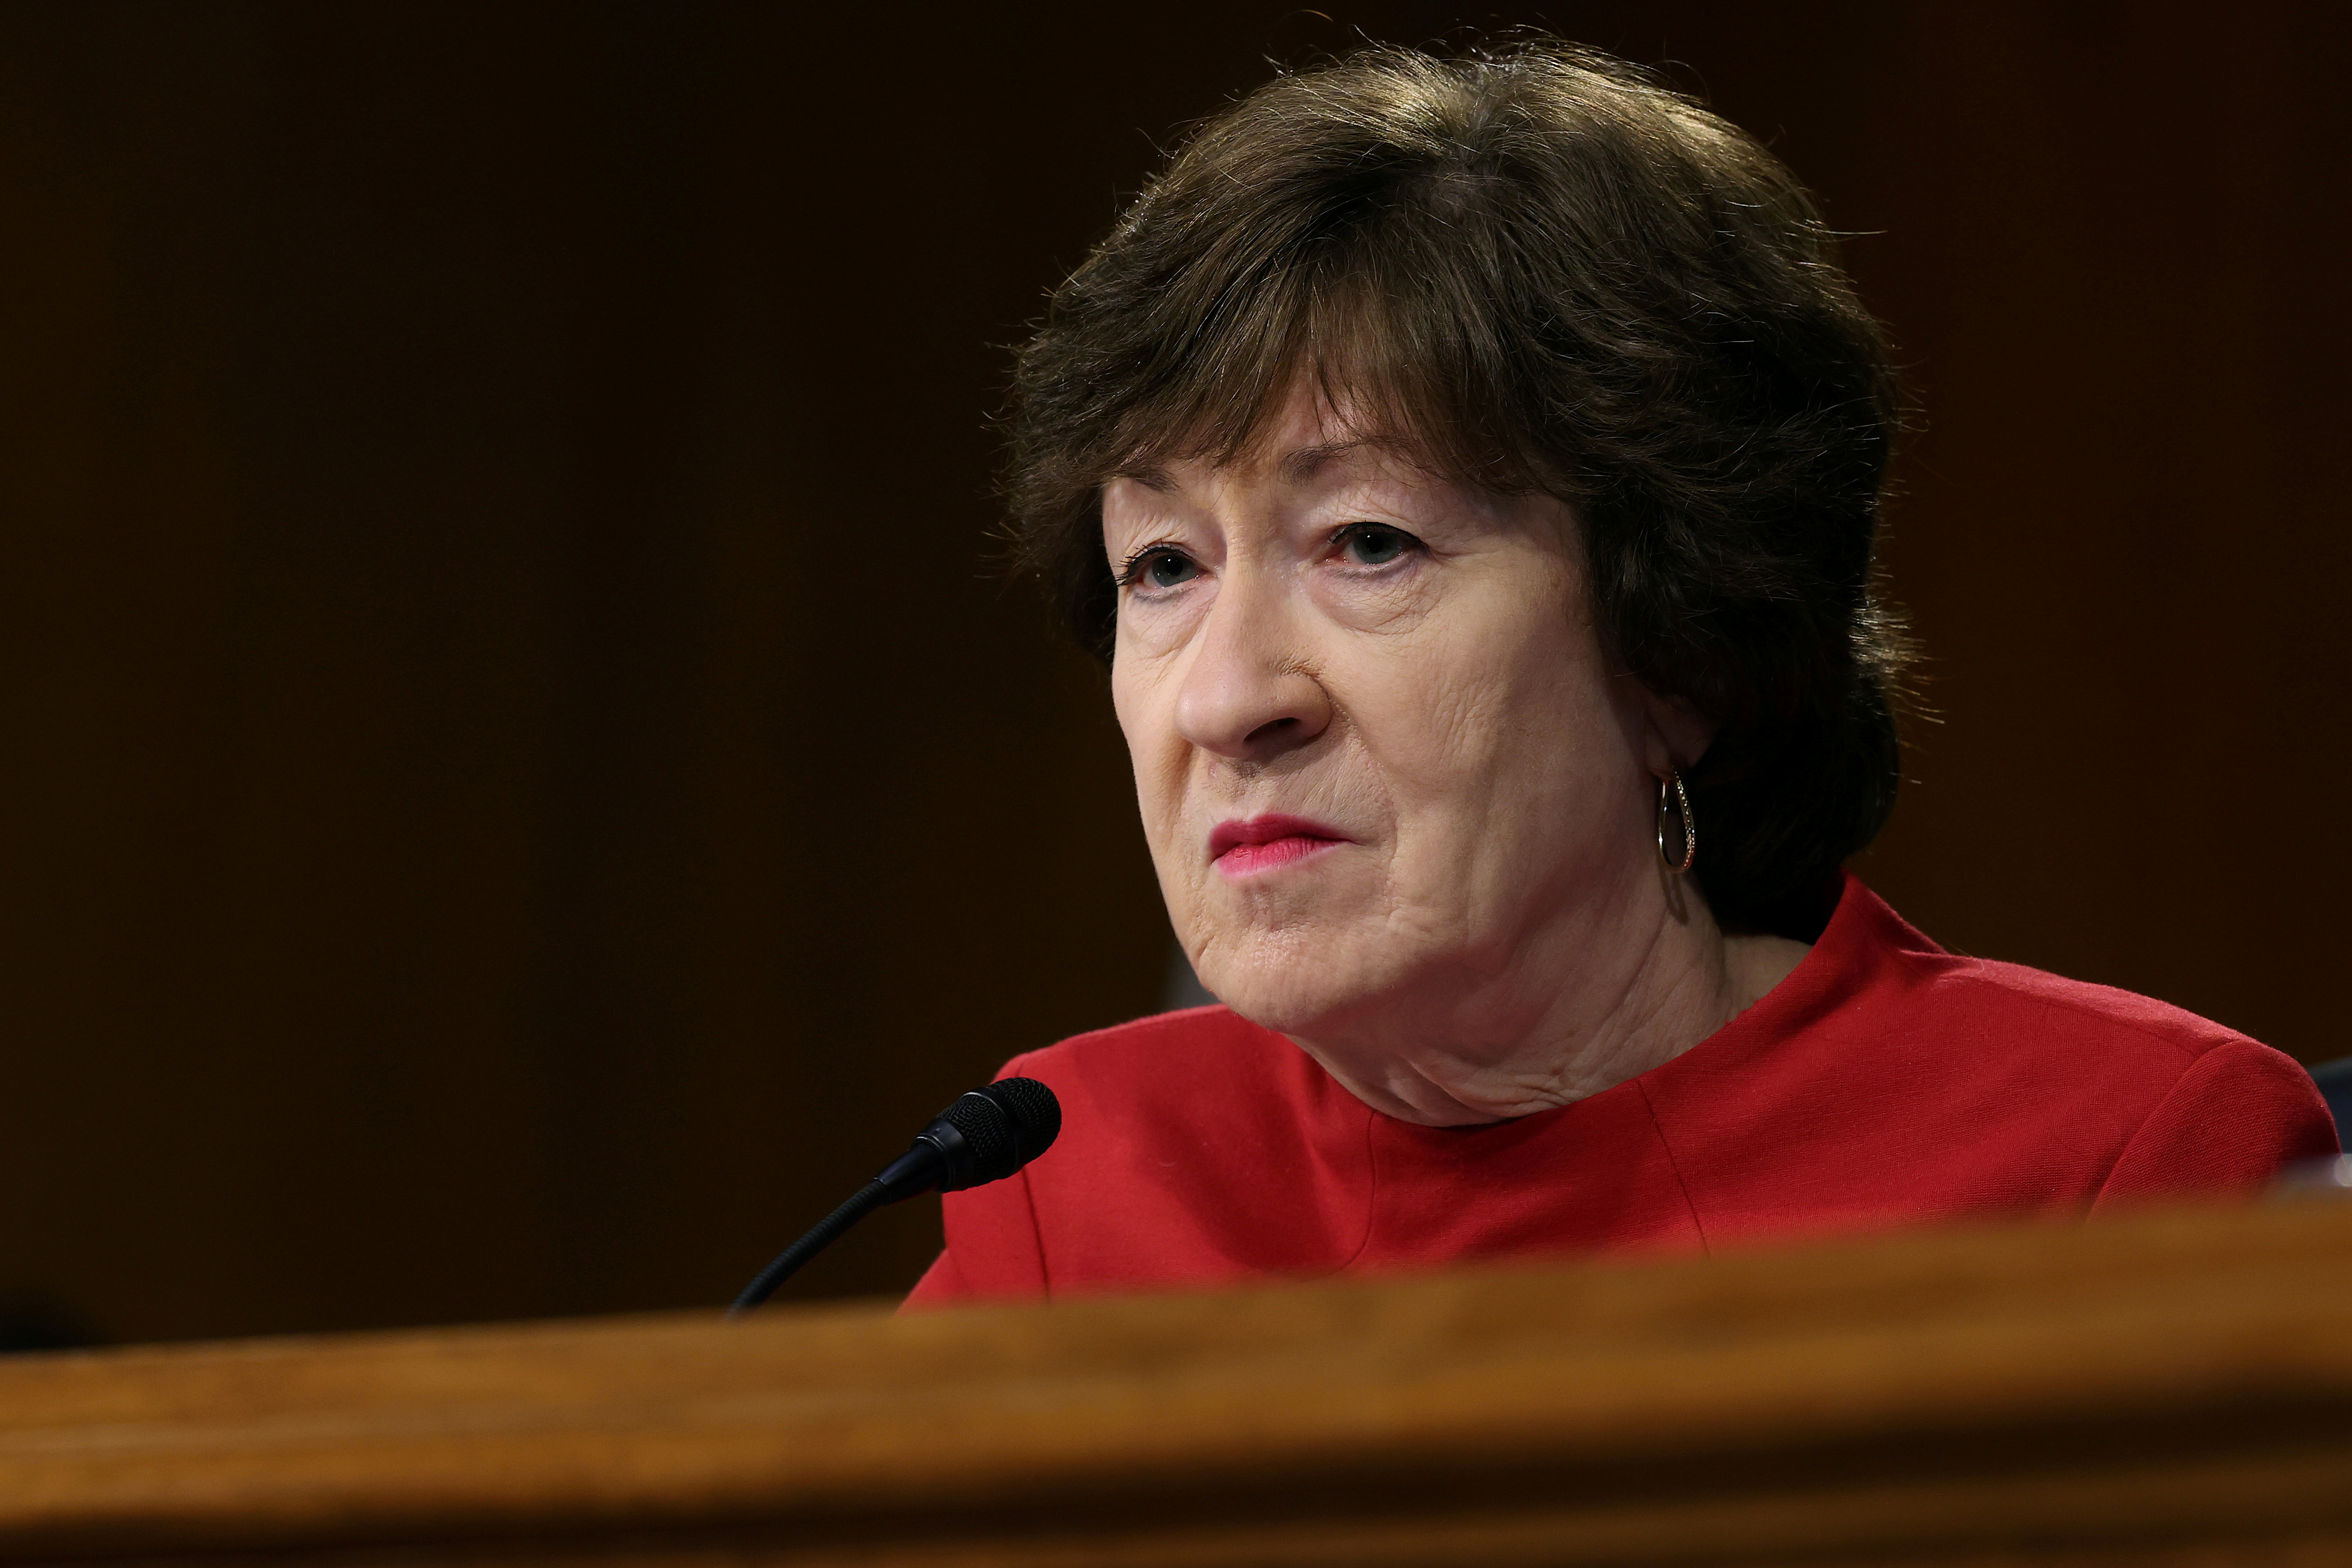 Senate Appropriations Committee member Sen. Susan Collins (R-ME) listens to testimony from members of the Biden administration during a hearing in the Dirksen Senate Office Building on Capitol Hill in Washington, D.C., U.S., April 20, 2021. Chip Somodevilla/Pool via REUTERS/File Photo